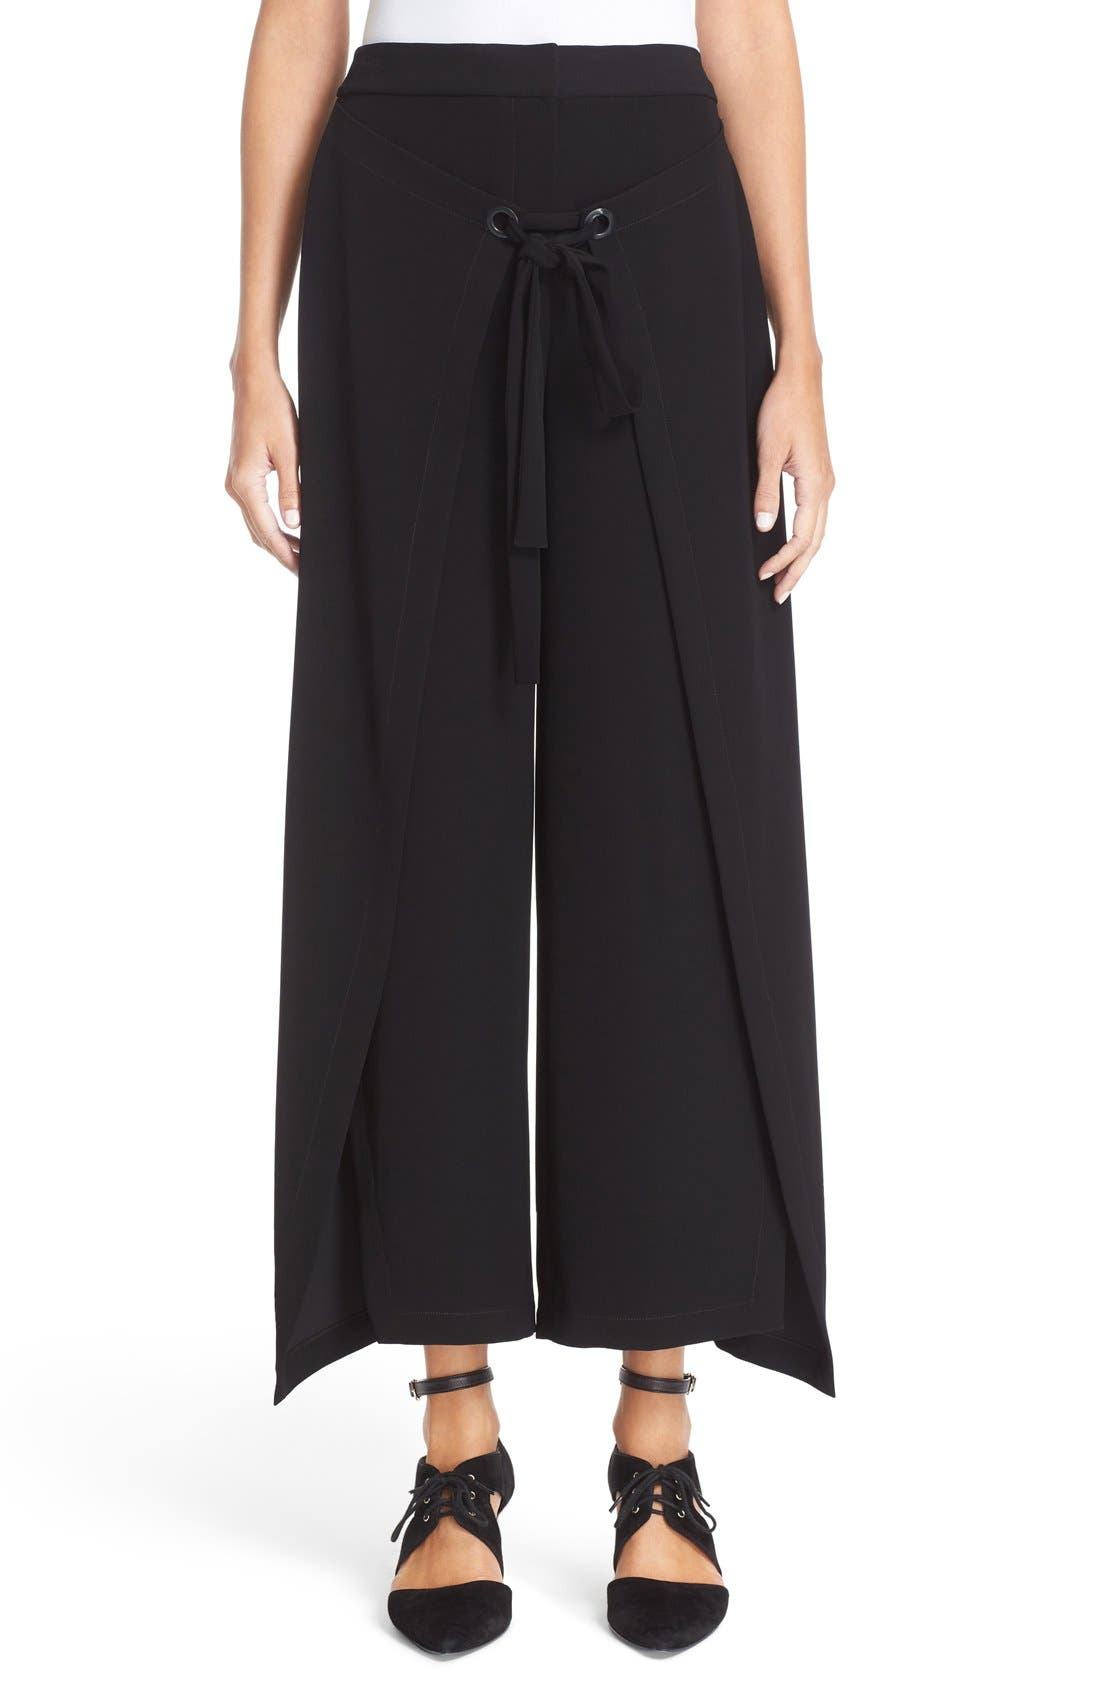 Alternate Image 1 Selected - Yigal Azrouël 'Giorgio' Wrap Front Wide Leg Pants